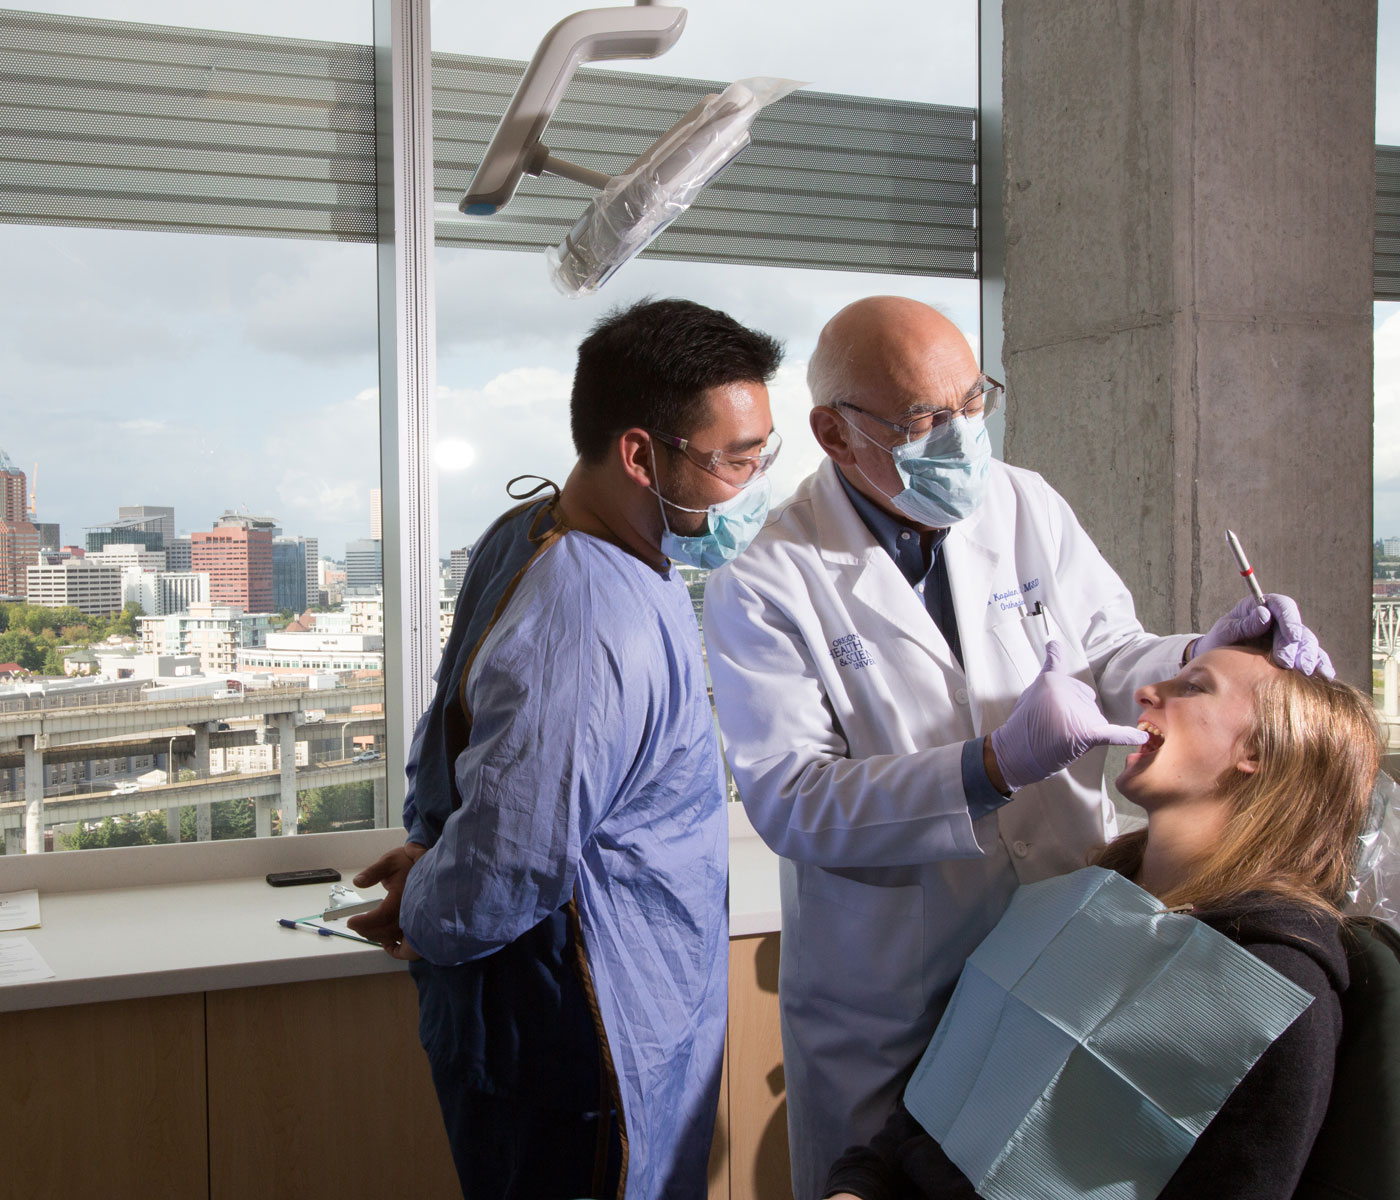 Two dentists helping a patient in a chair